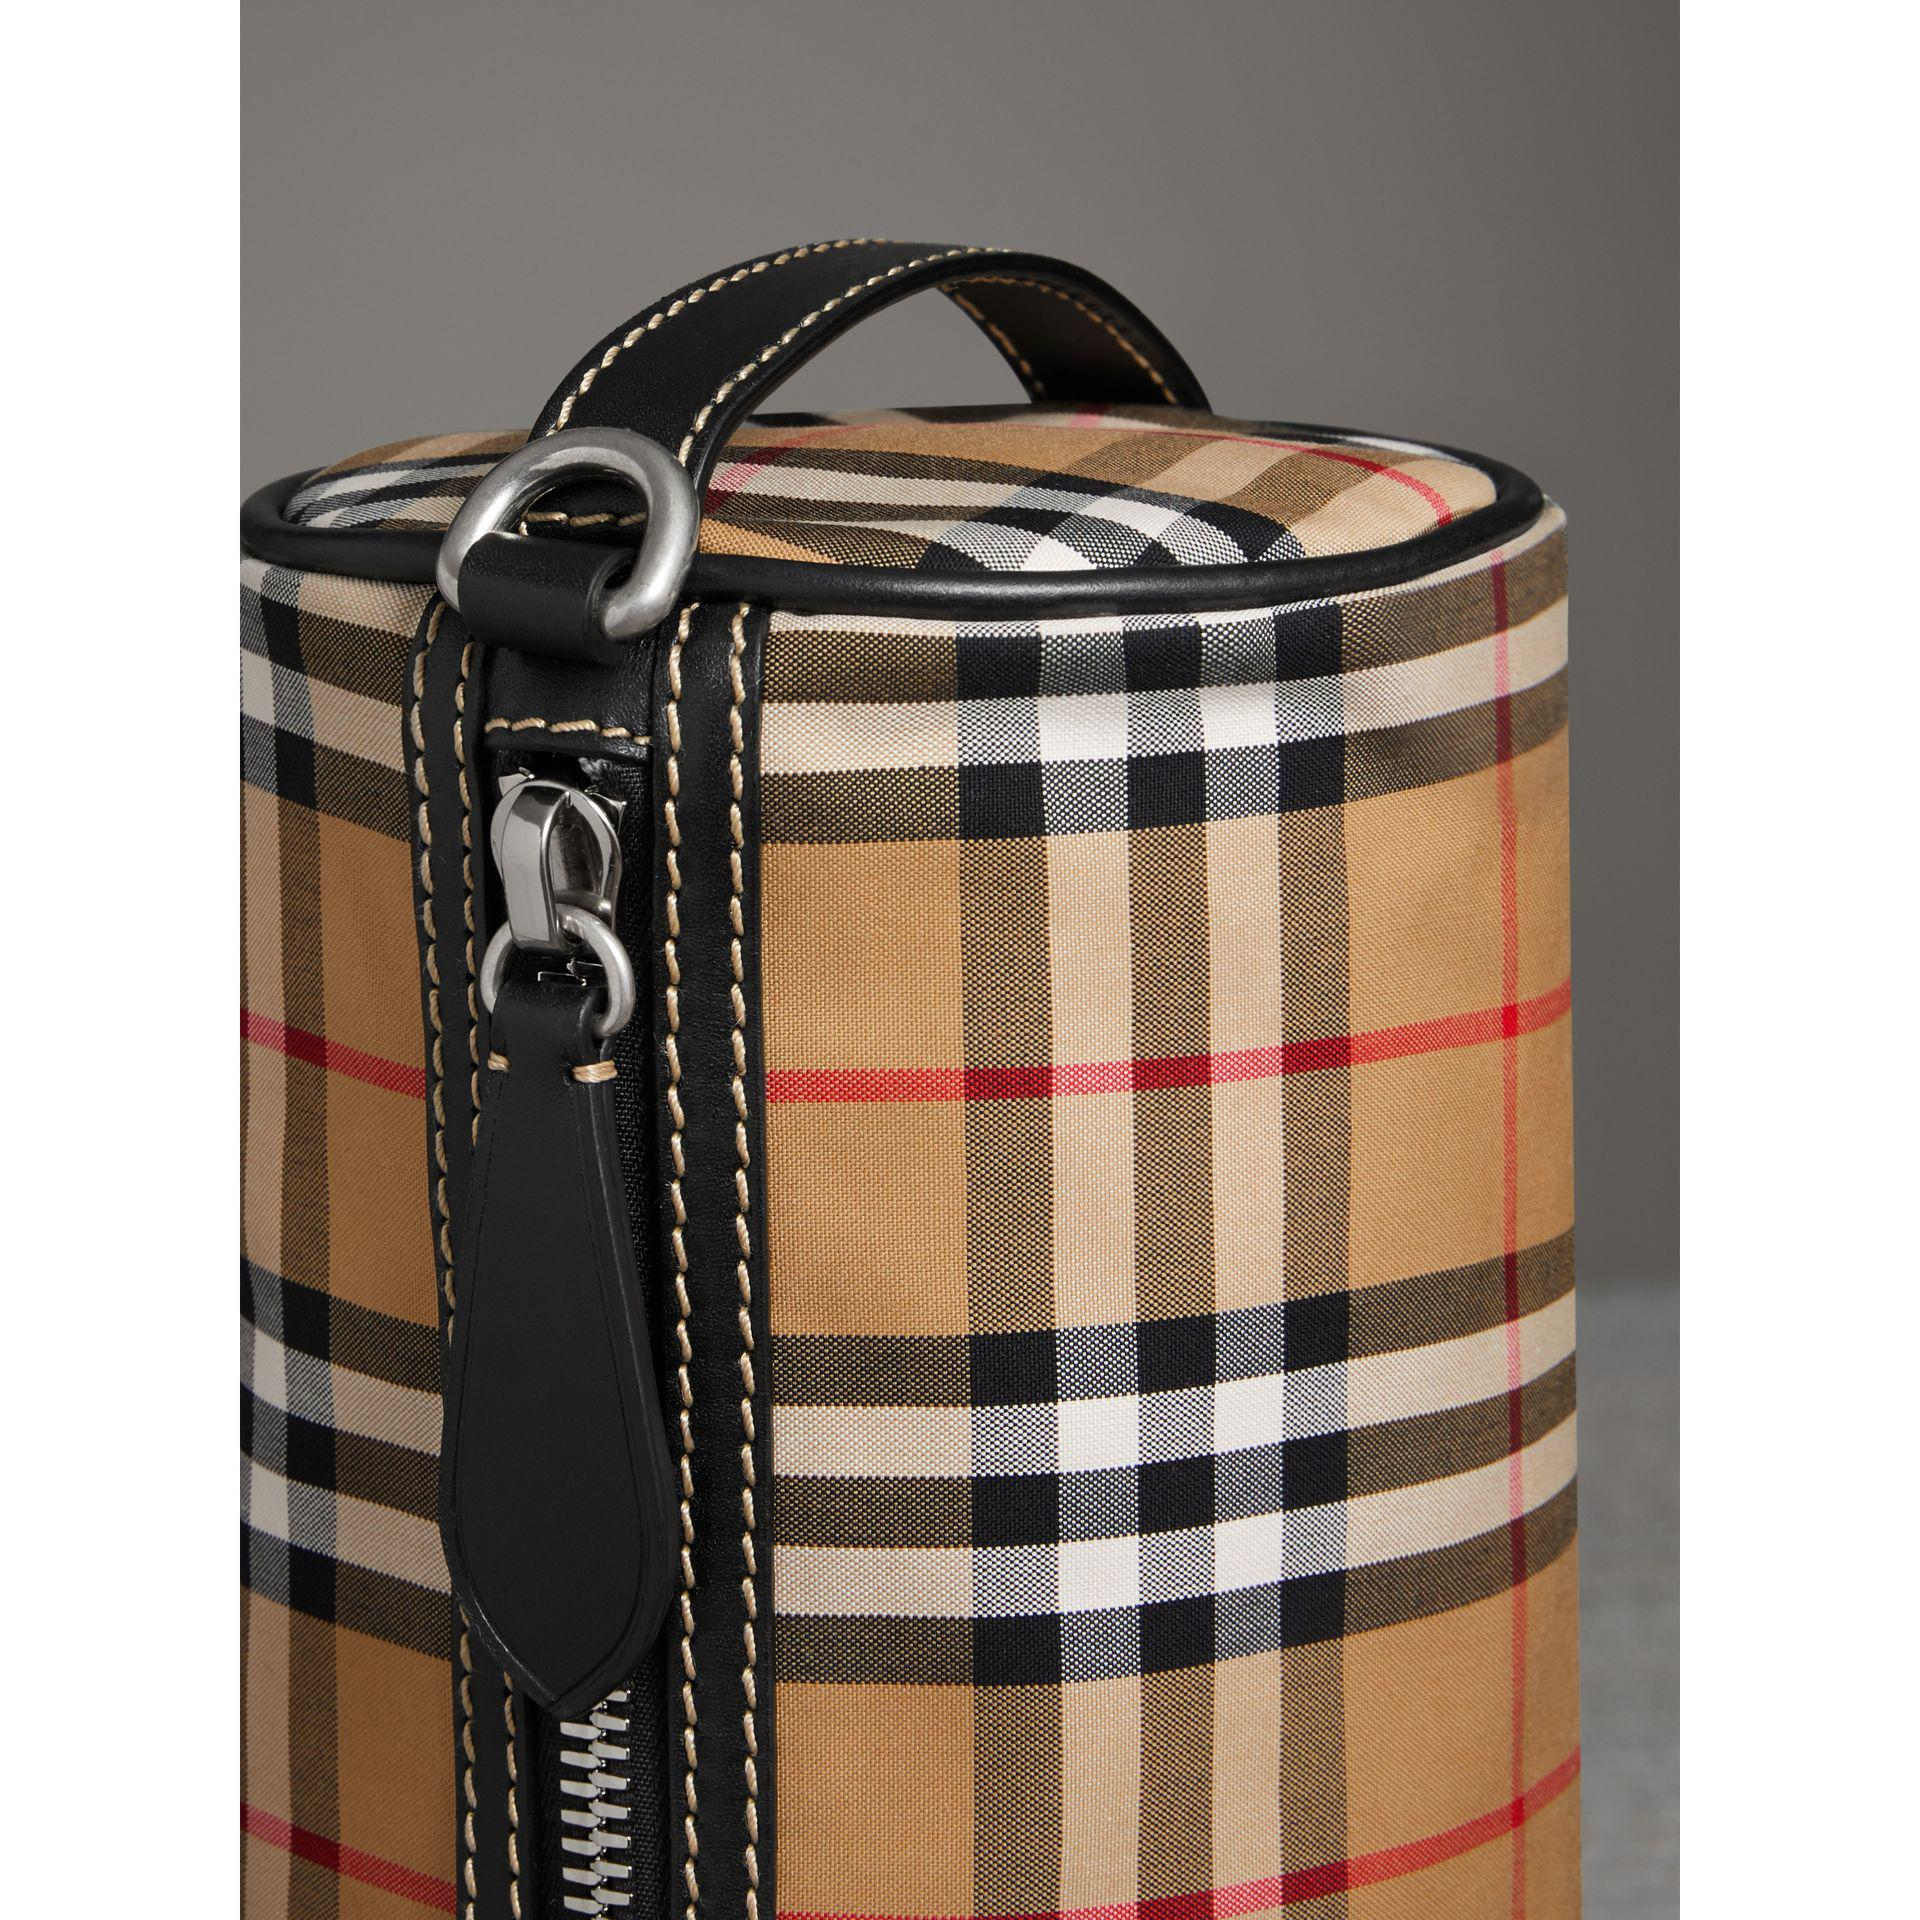 d0a74e2f459e Burberry The Small Vintage Check And Leather Barrel Bag - Lyst